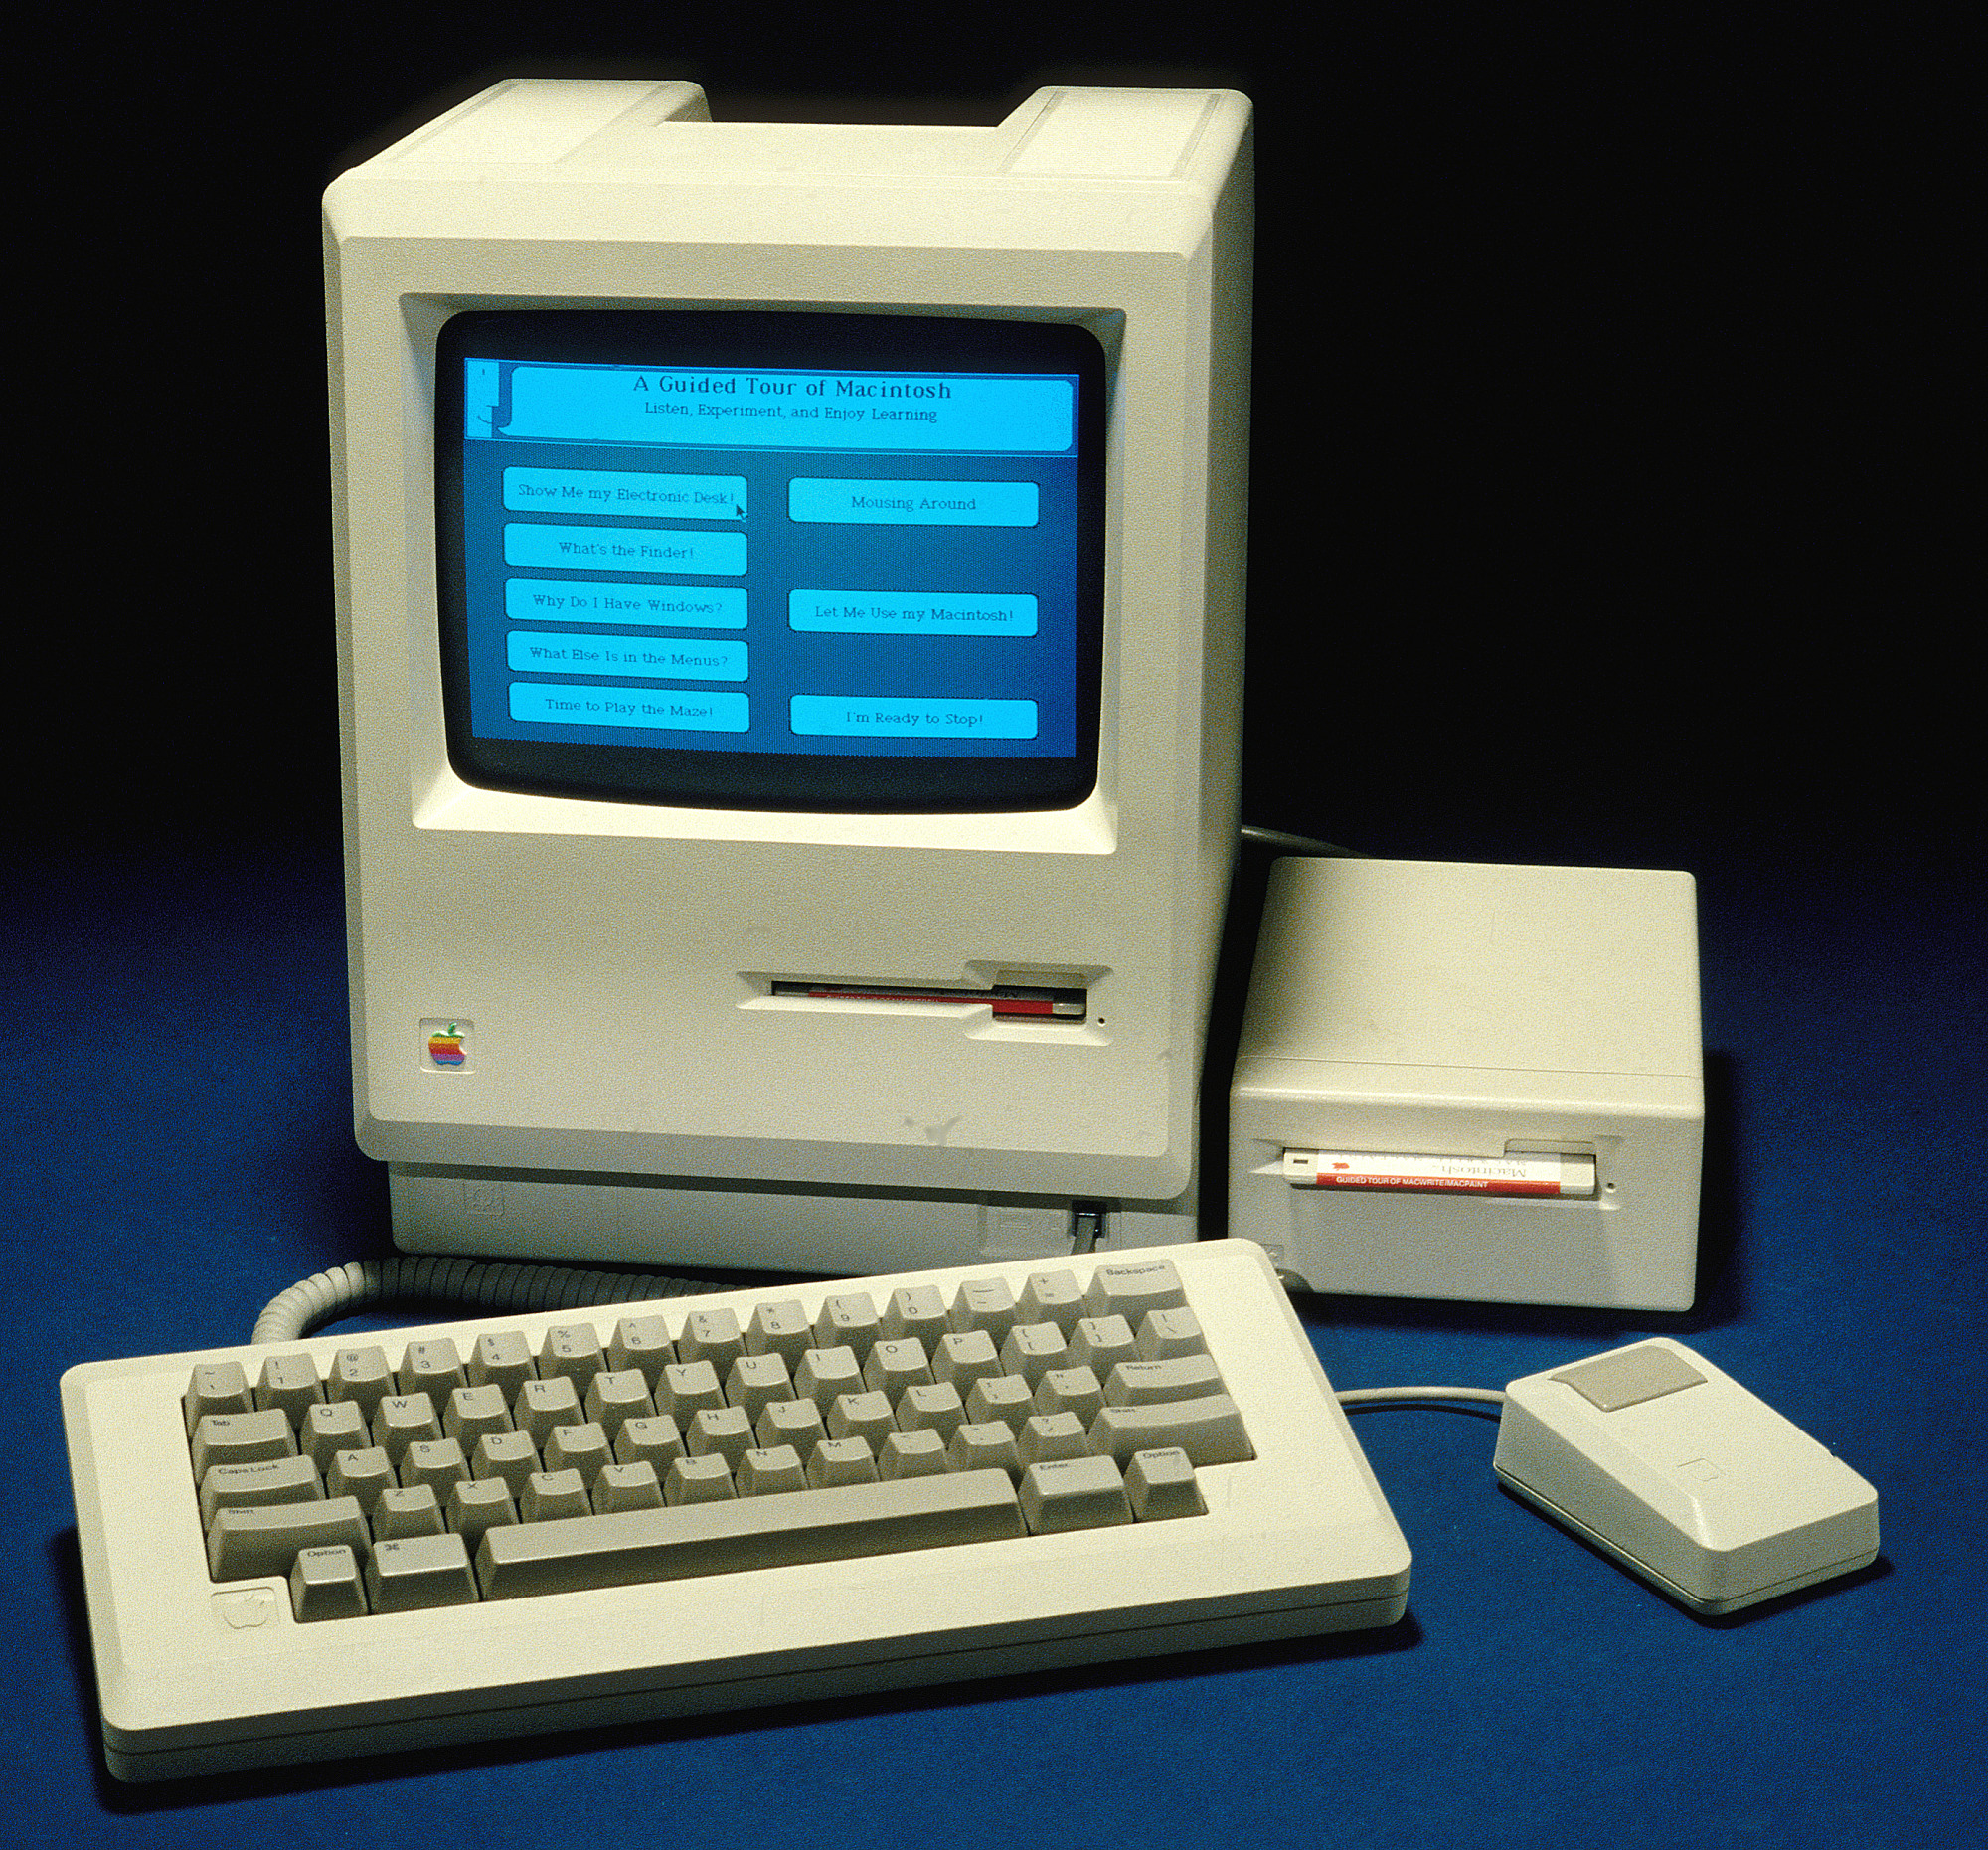 images for Apple Macintosh Mouse